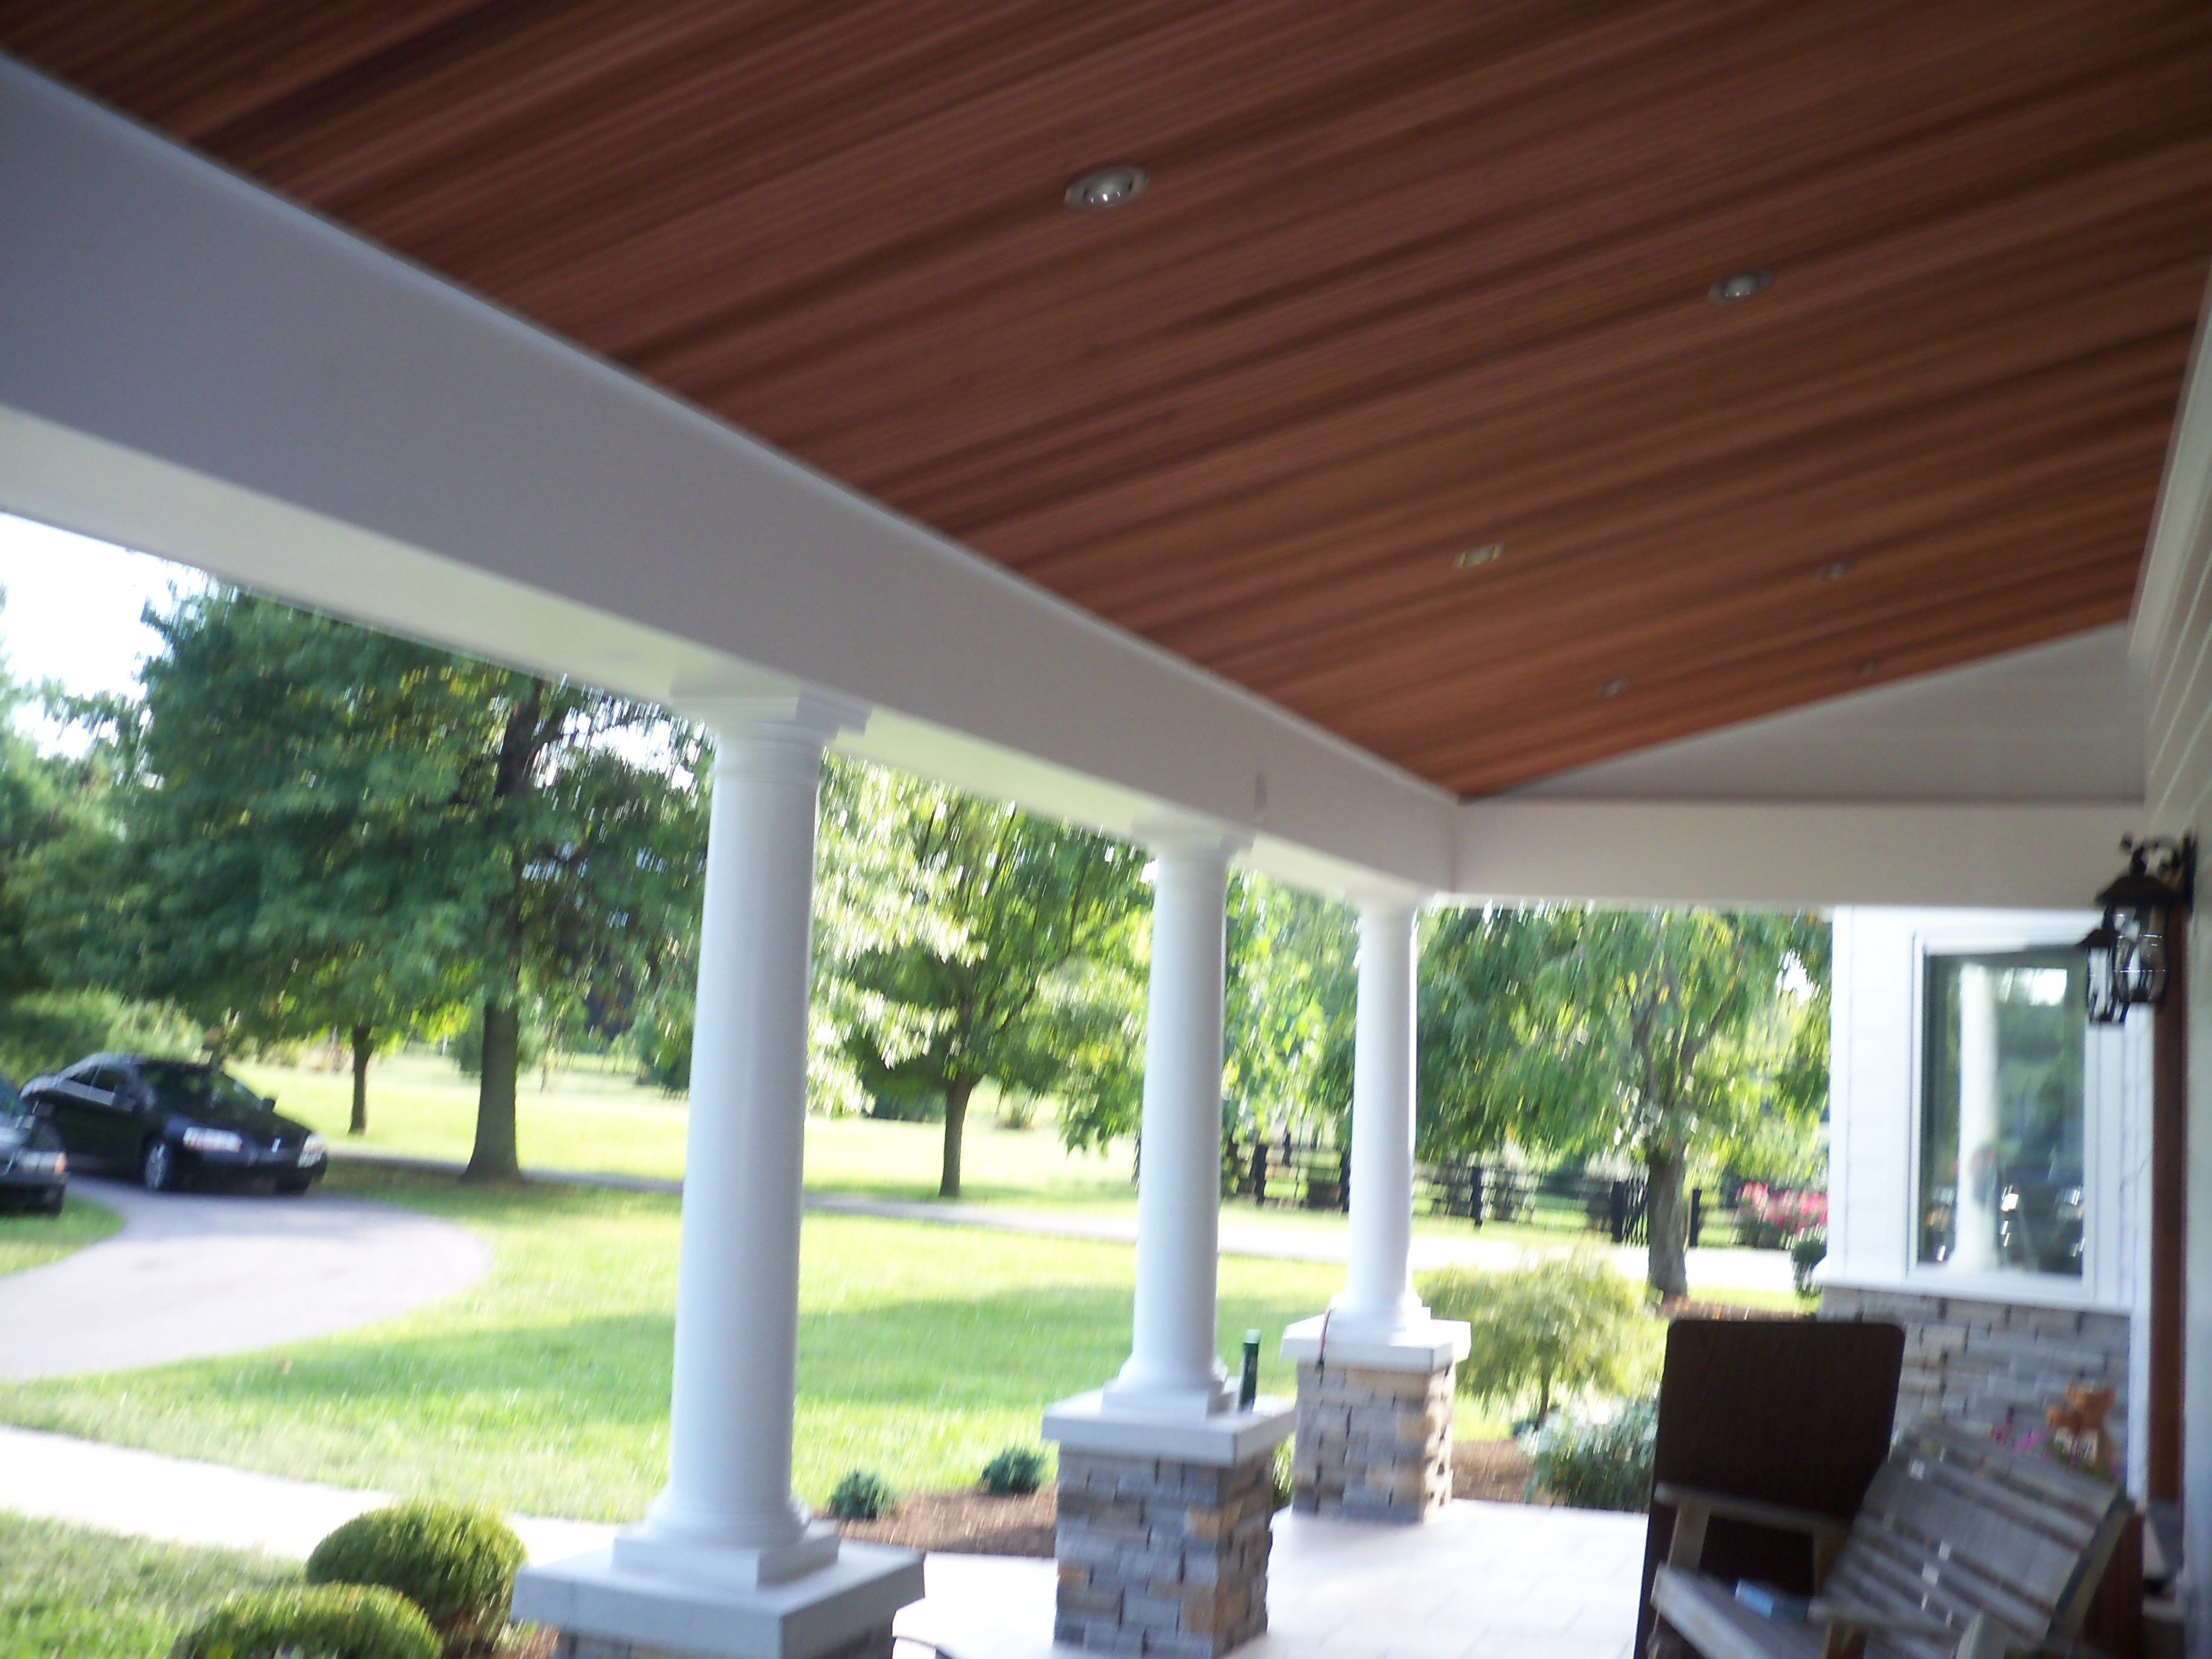 Wood Ceiling And Can Lights On Porch Can Lights Porch Lighting